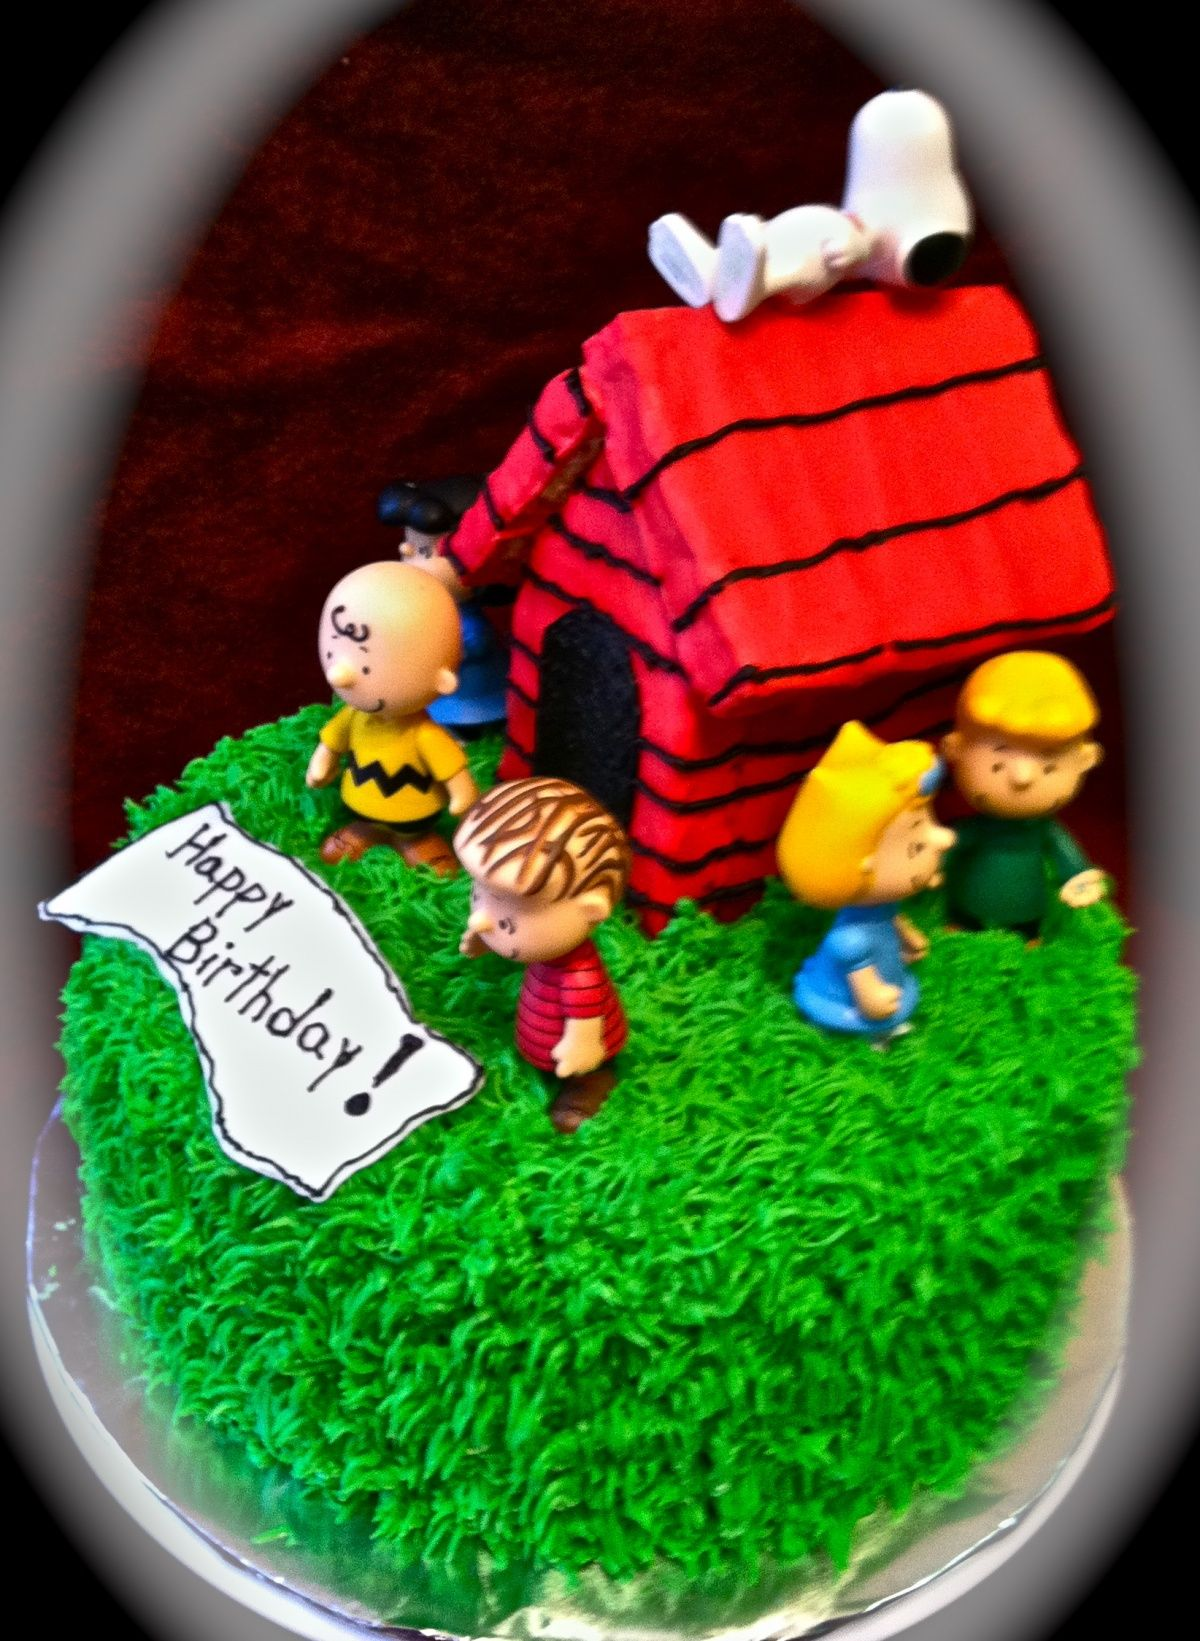 Cake Idea I Have The Grass Tip We Can Make The Dog House